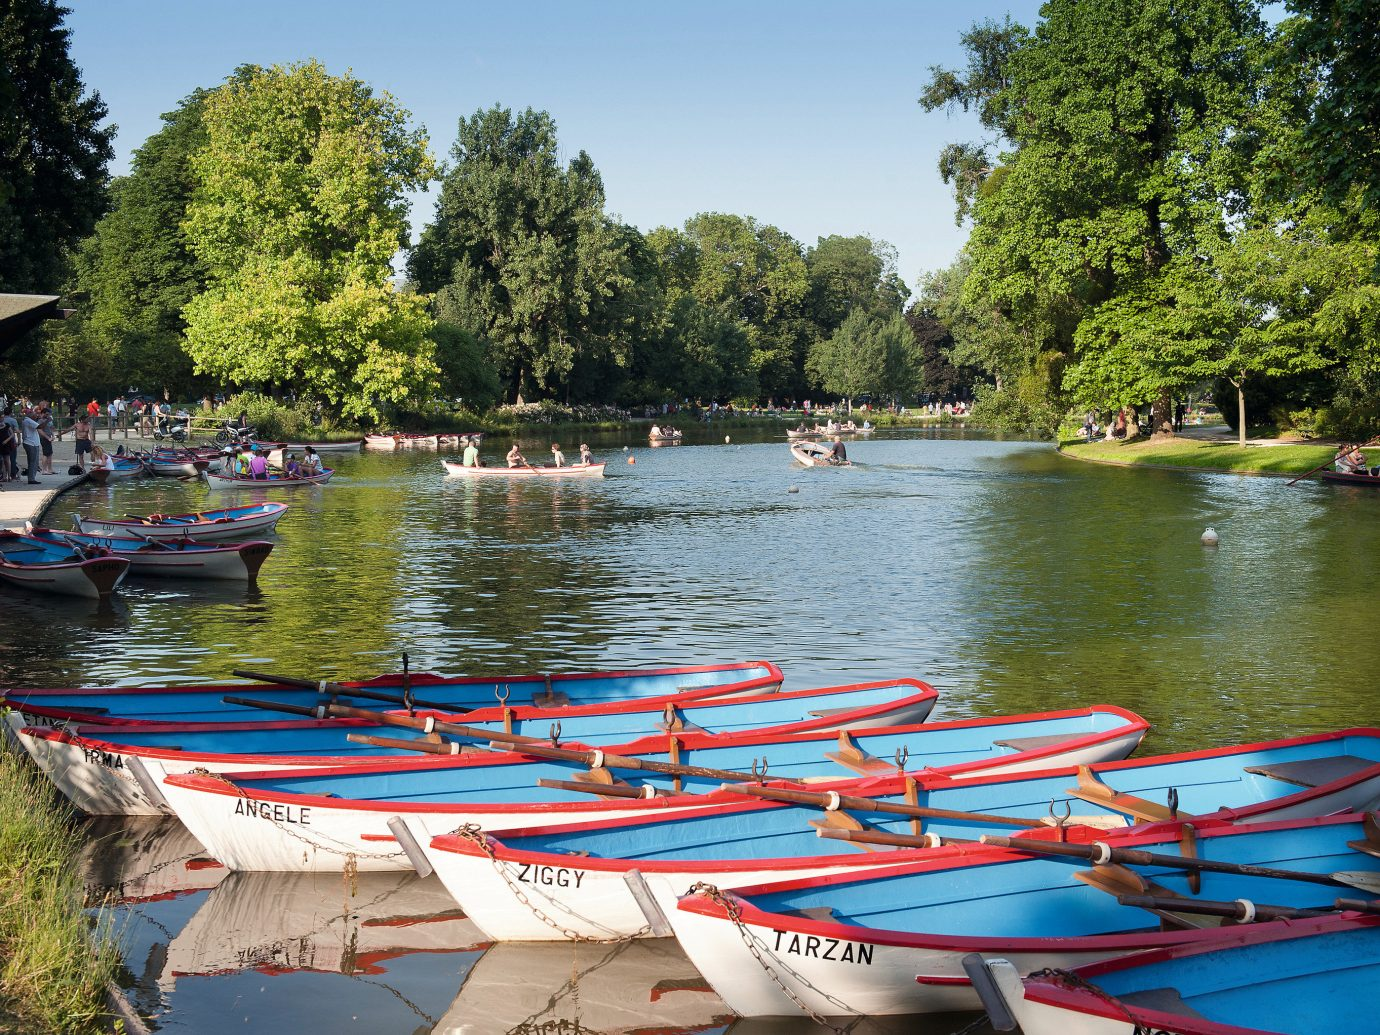 Romance Trip Ideas tree outdoor water sky Boat boating vehicle River watercraft rowing canoe watercraft waterway paddle lined surrounded several